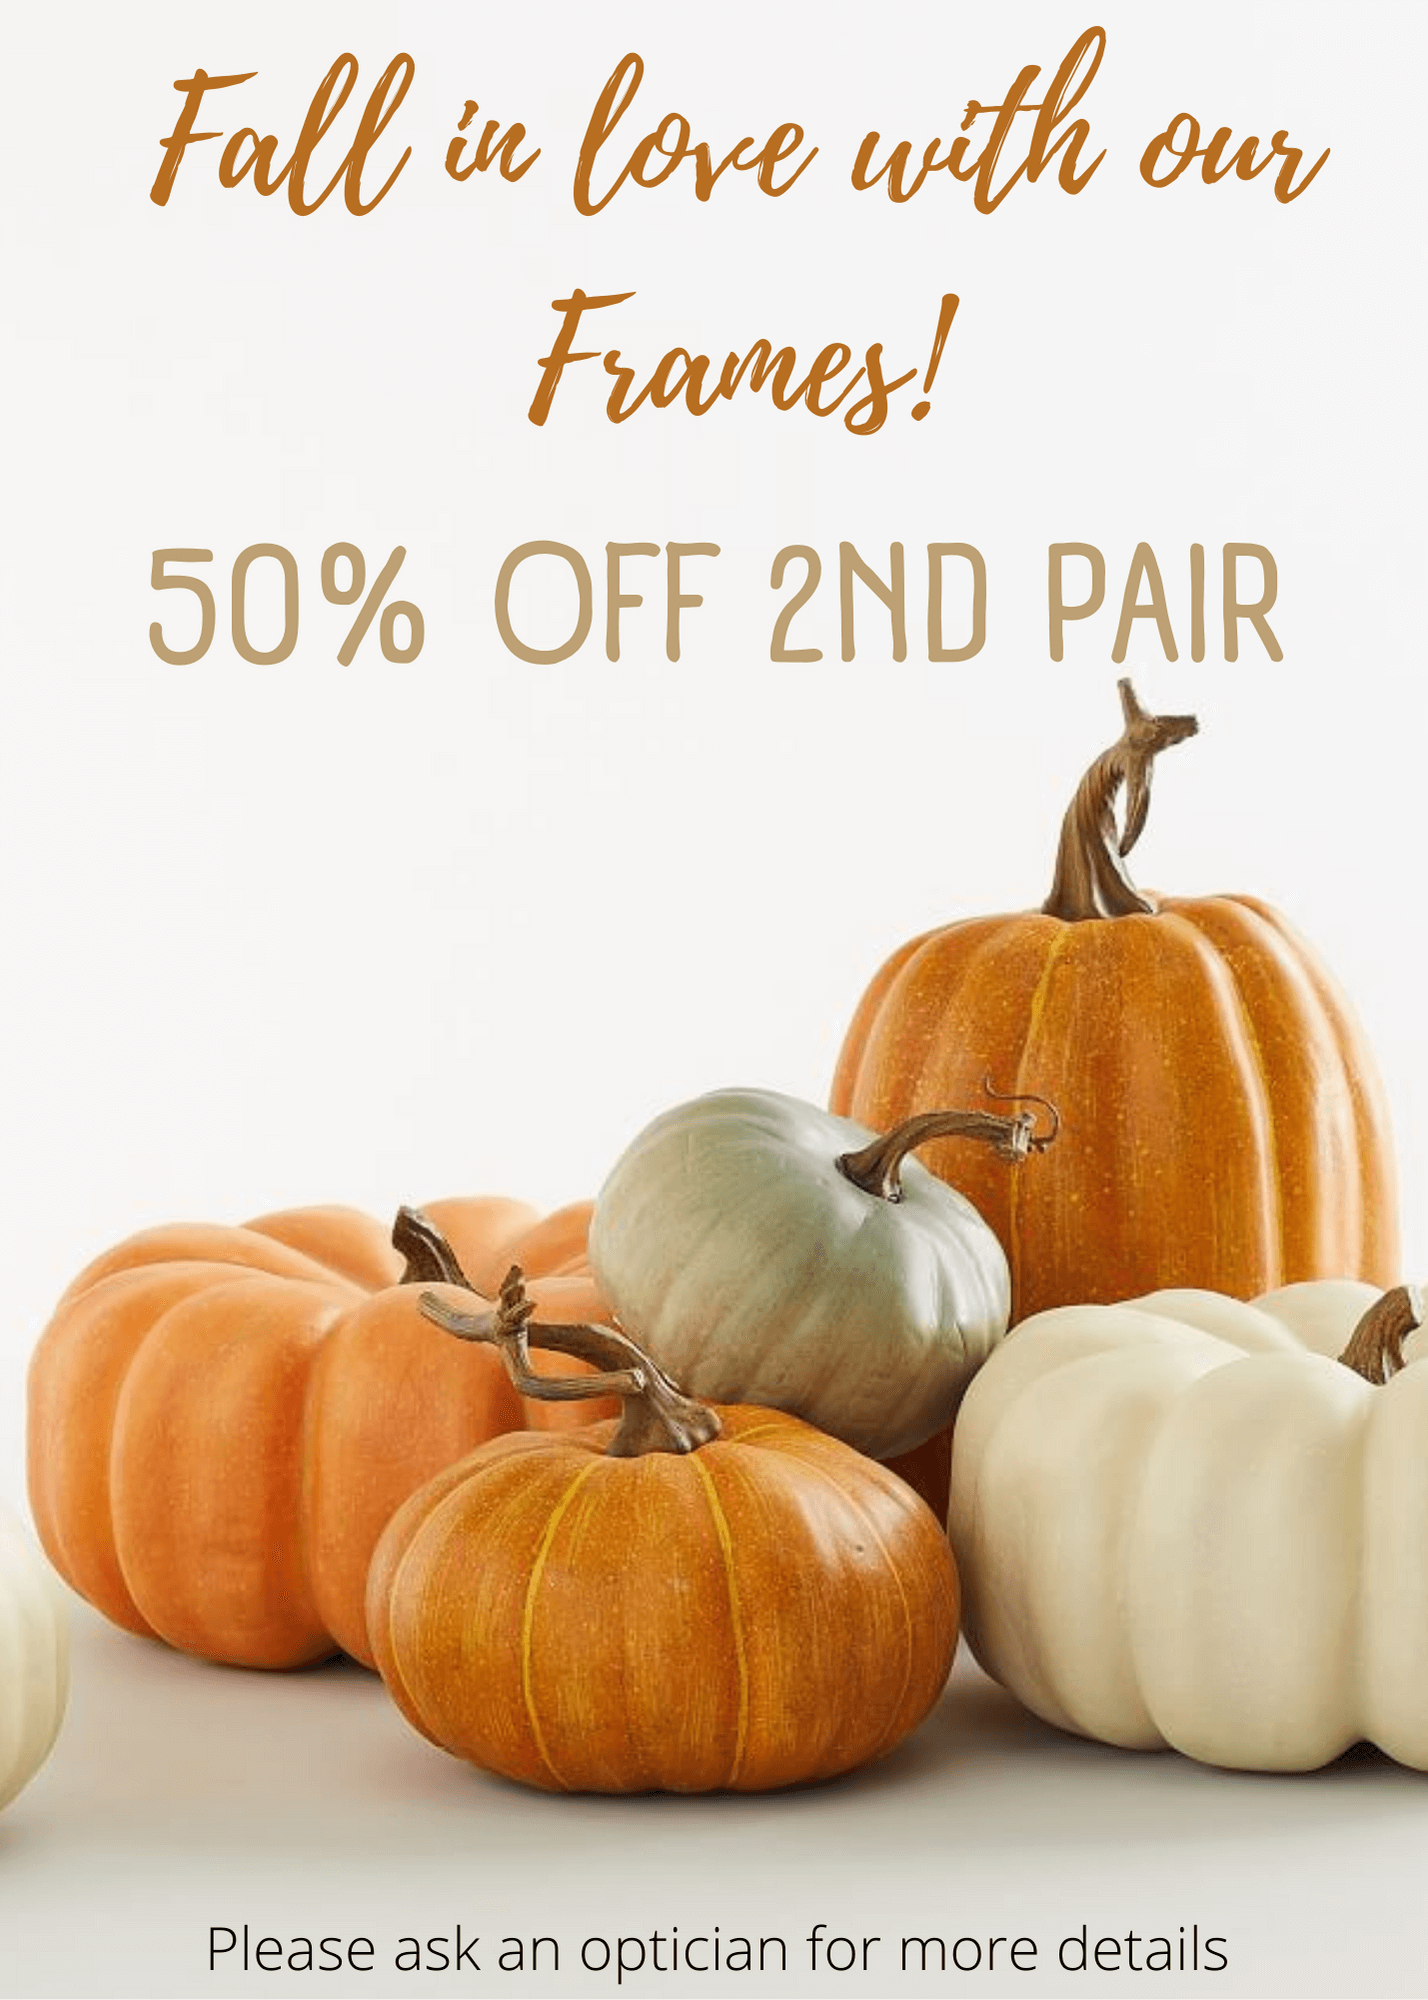 Fall in love with our Frames